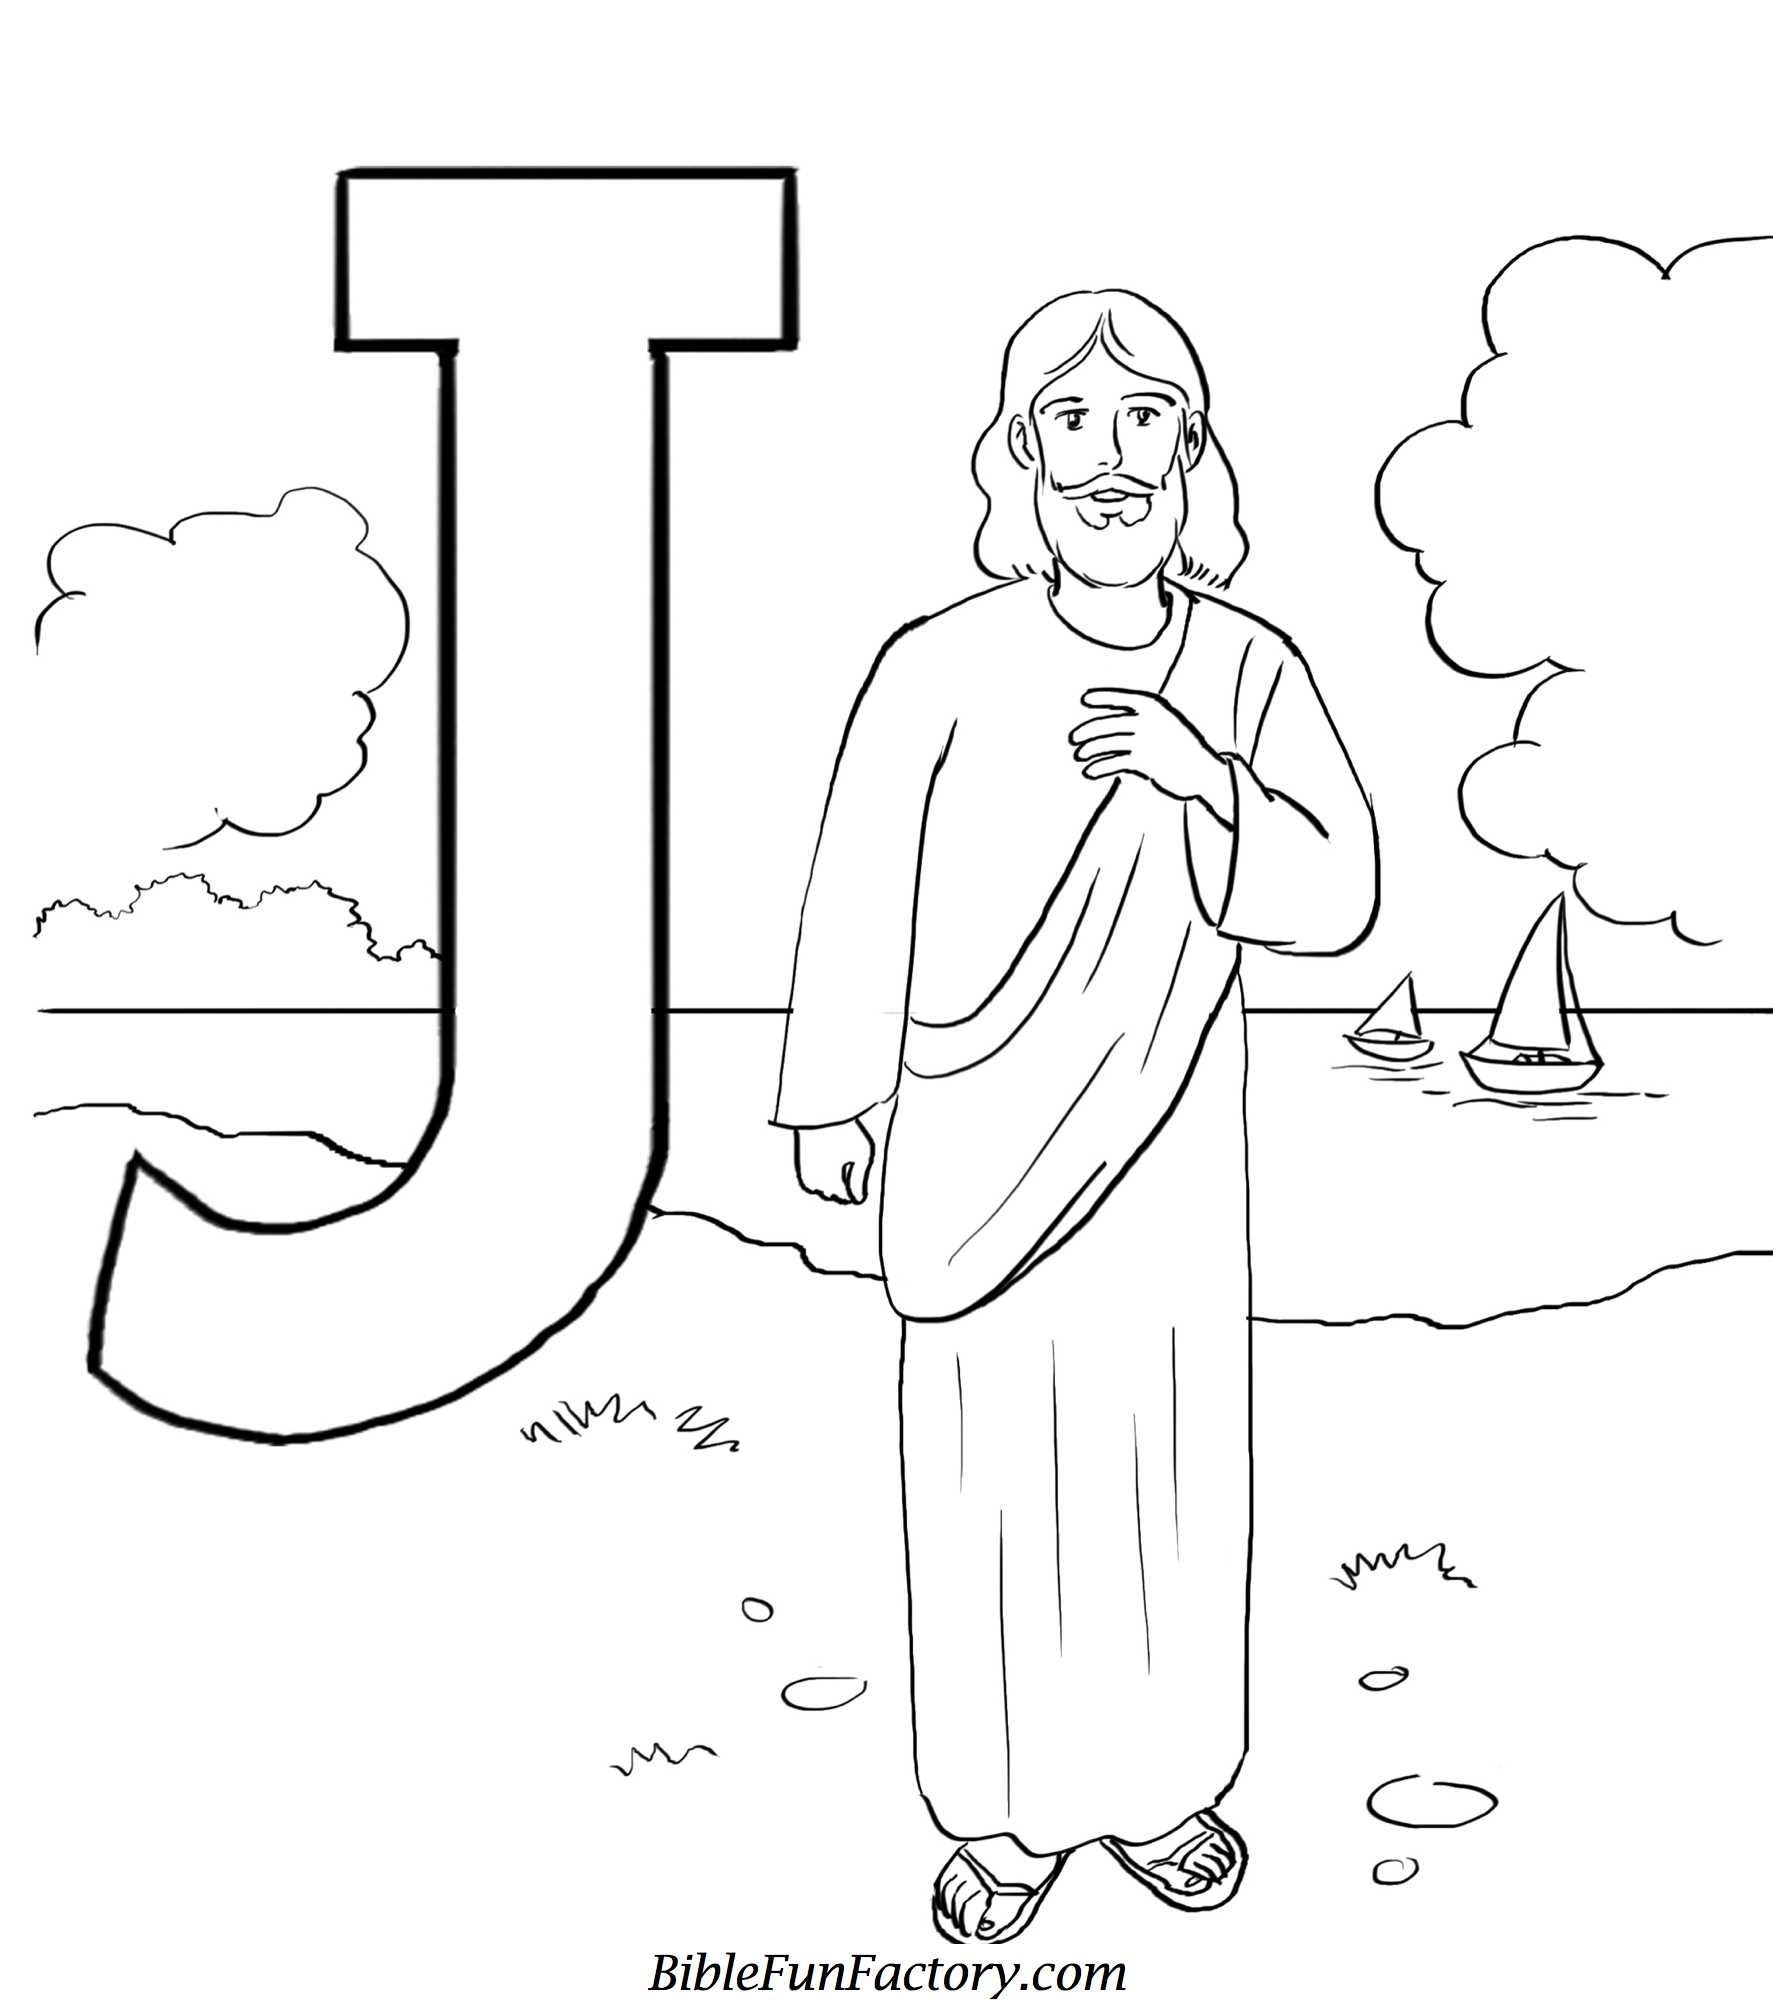 preschool bible coloring pages - photo#19